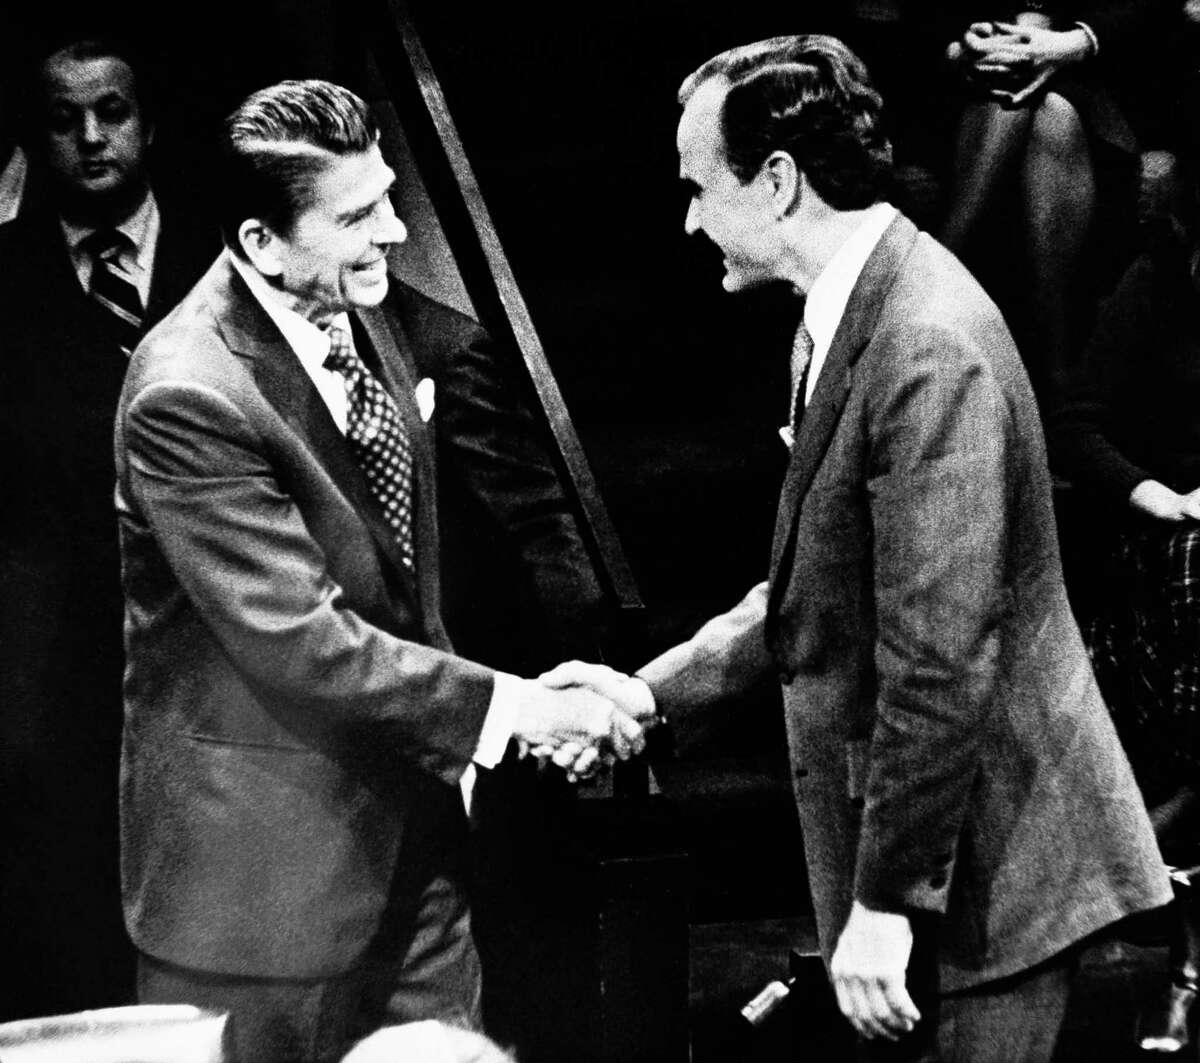 Republican presidential candidates Ronald Reagan, left, and George H.W. Bush, right, greet prior to their Thursday night debate February 28, 1980 on public television.